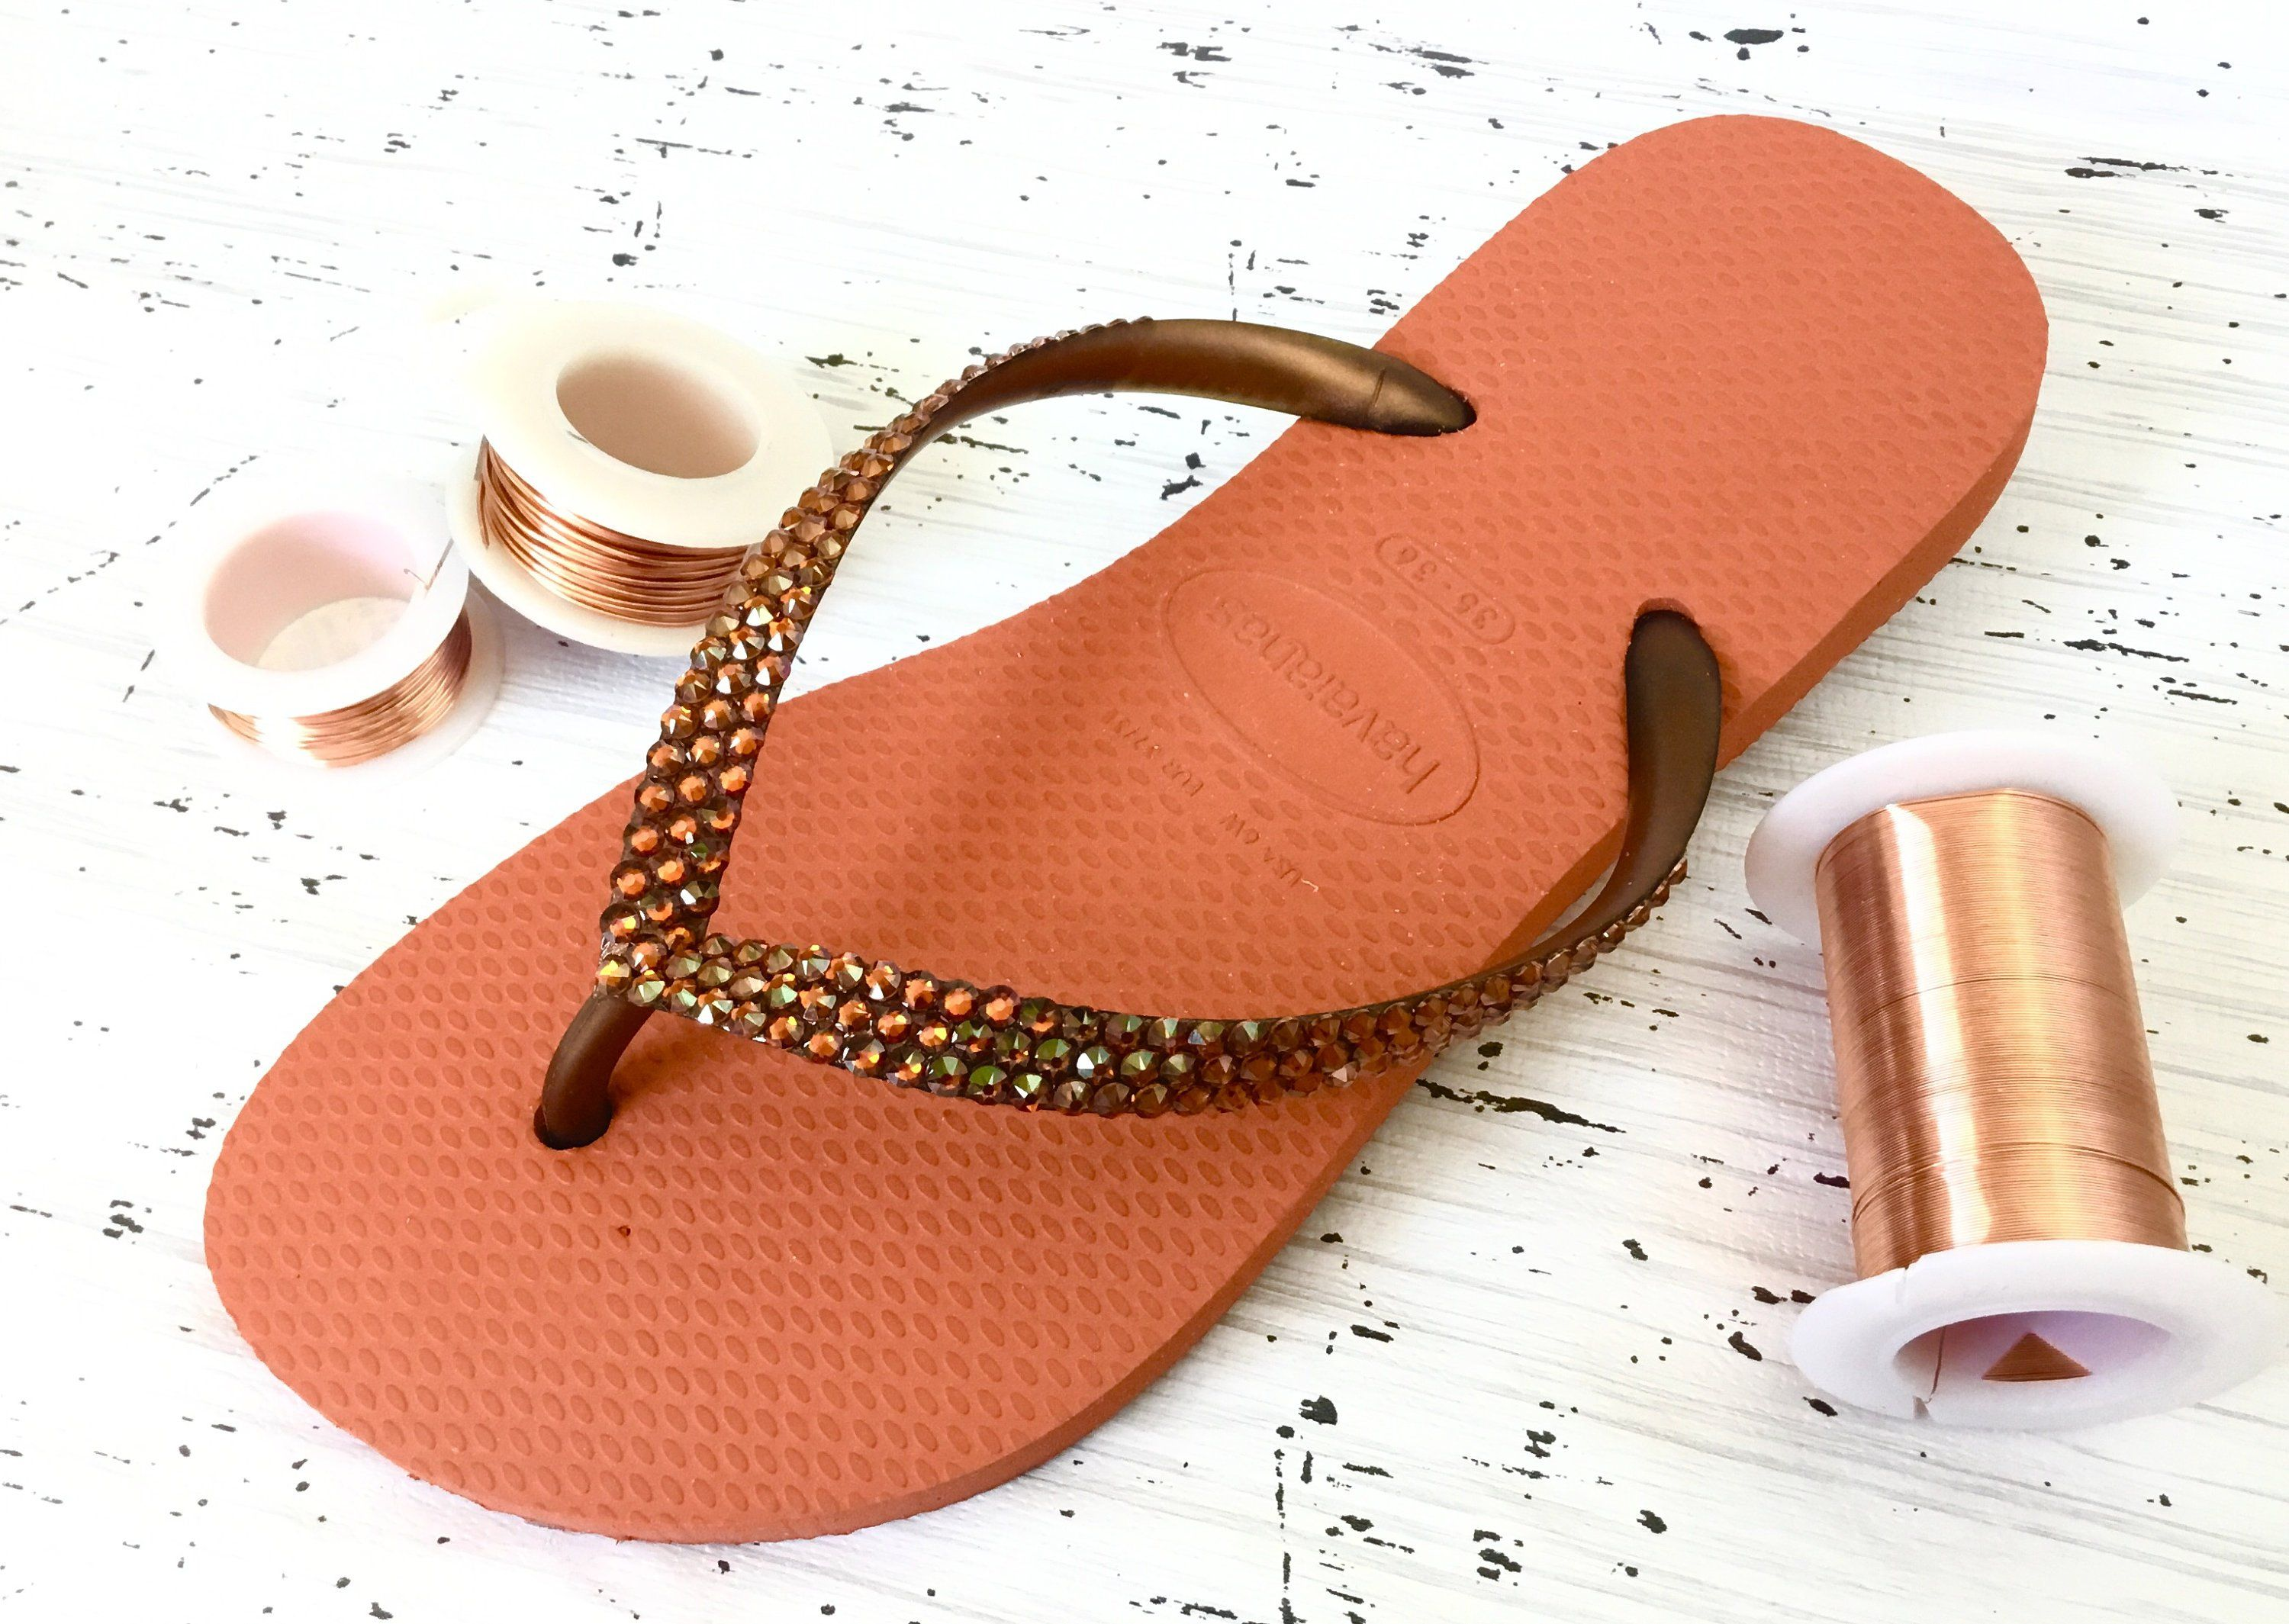 719a6f07d Burnt Orange Flip Flops Havaianas Slim Coral Copper w  Swarovski Crystal  Metallic Wedding Bling Rhinestone Red Custom Beach Sandal Shoe